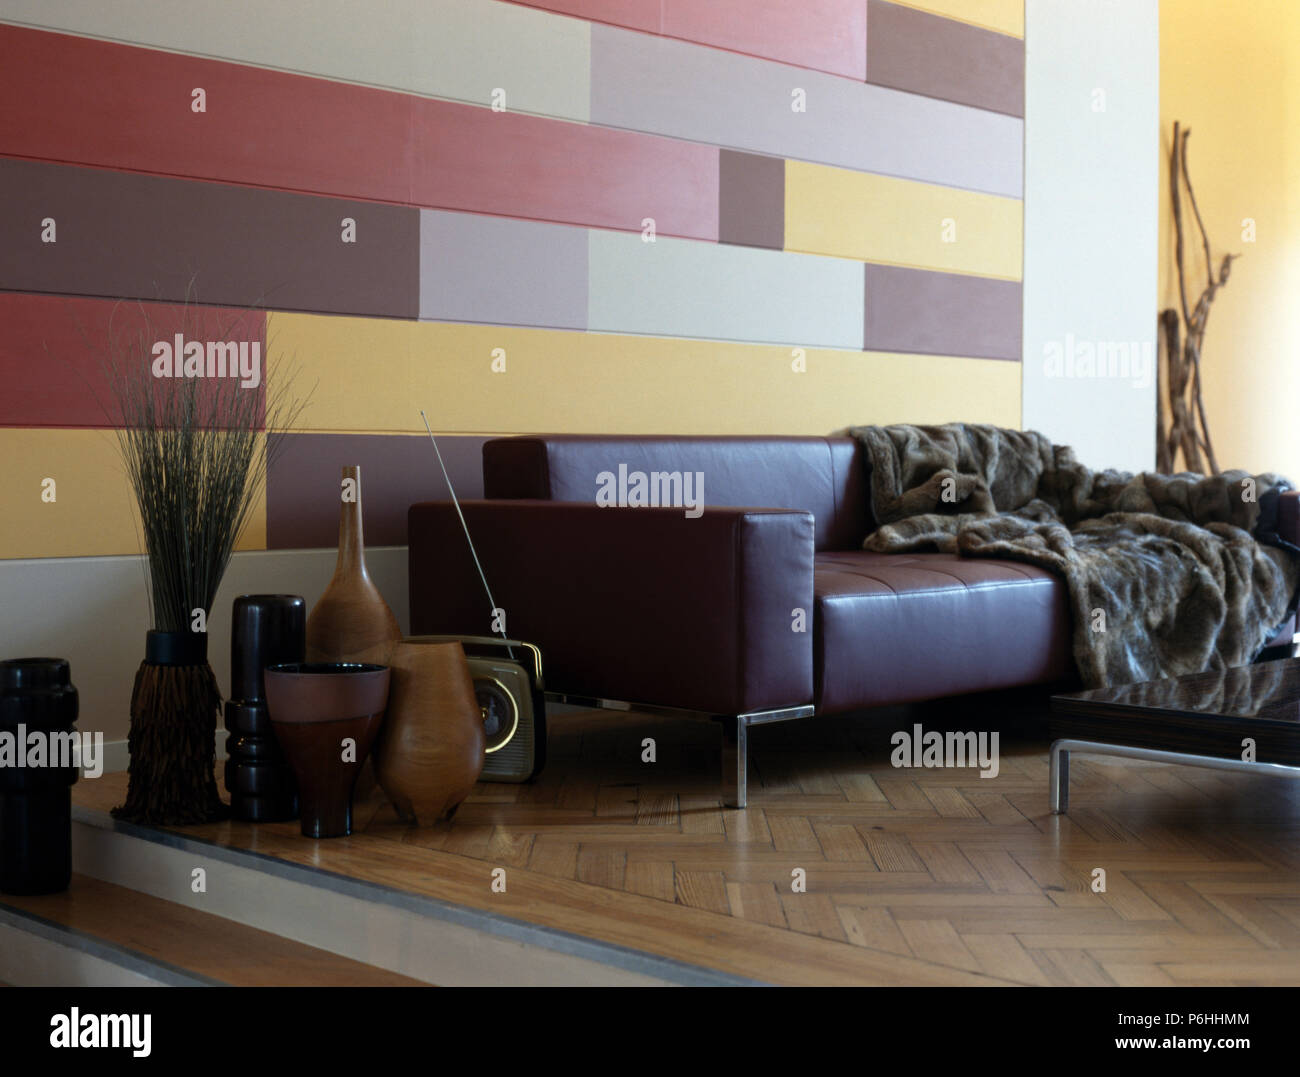 Collection of tall wooden pots beside brown leather sofa with faux fur throw in split-level living room with painted wall - Stock Image